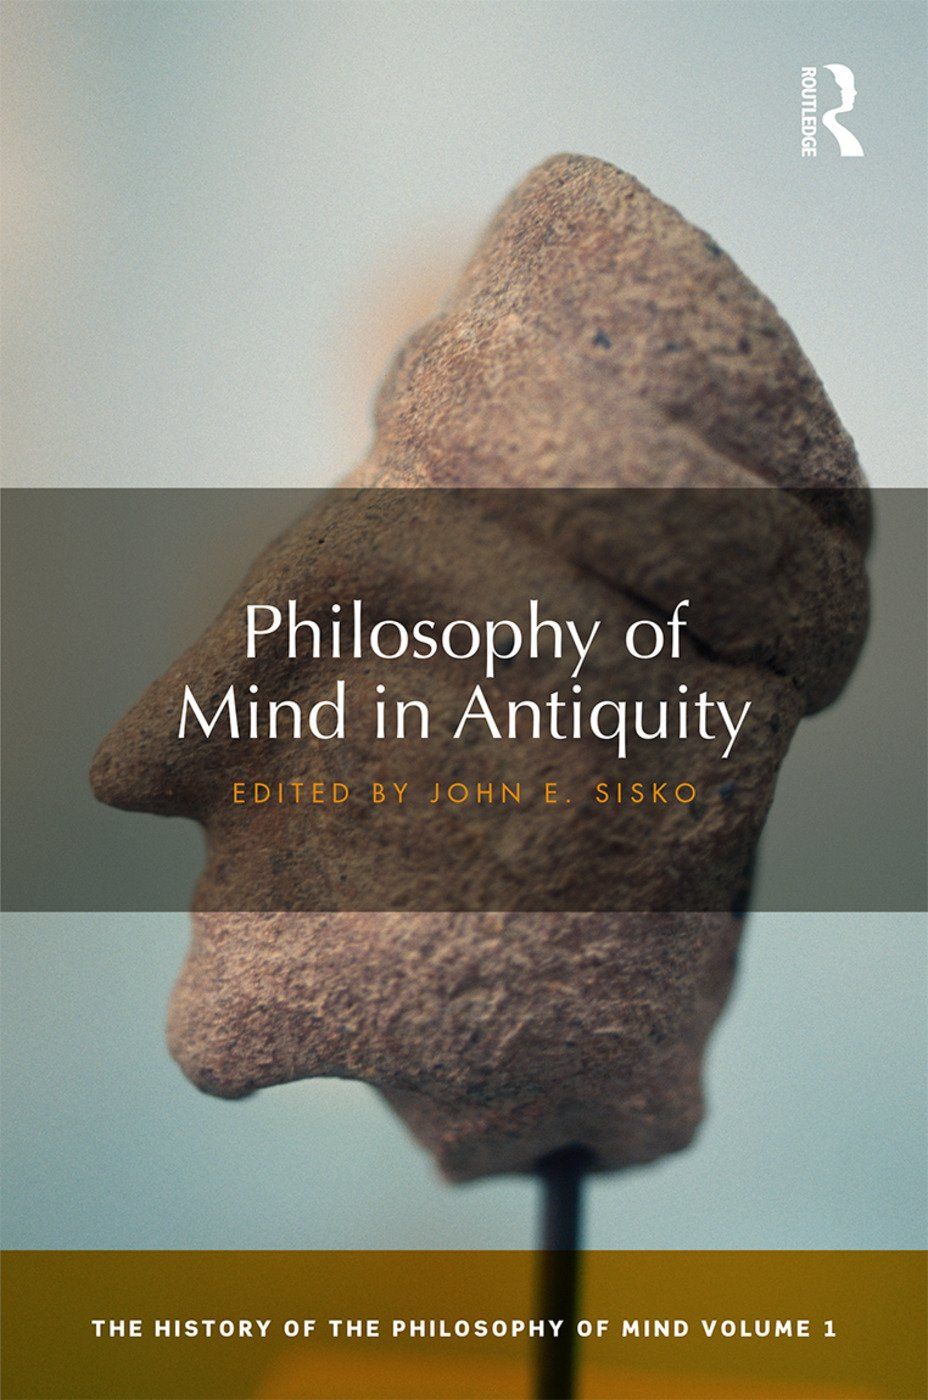 Philosophy of Mind in Antiquity: The History of the Philosophy of Mind, Volume 1 book cover